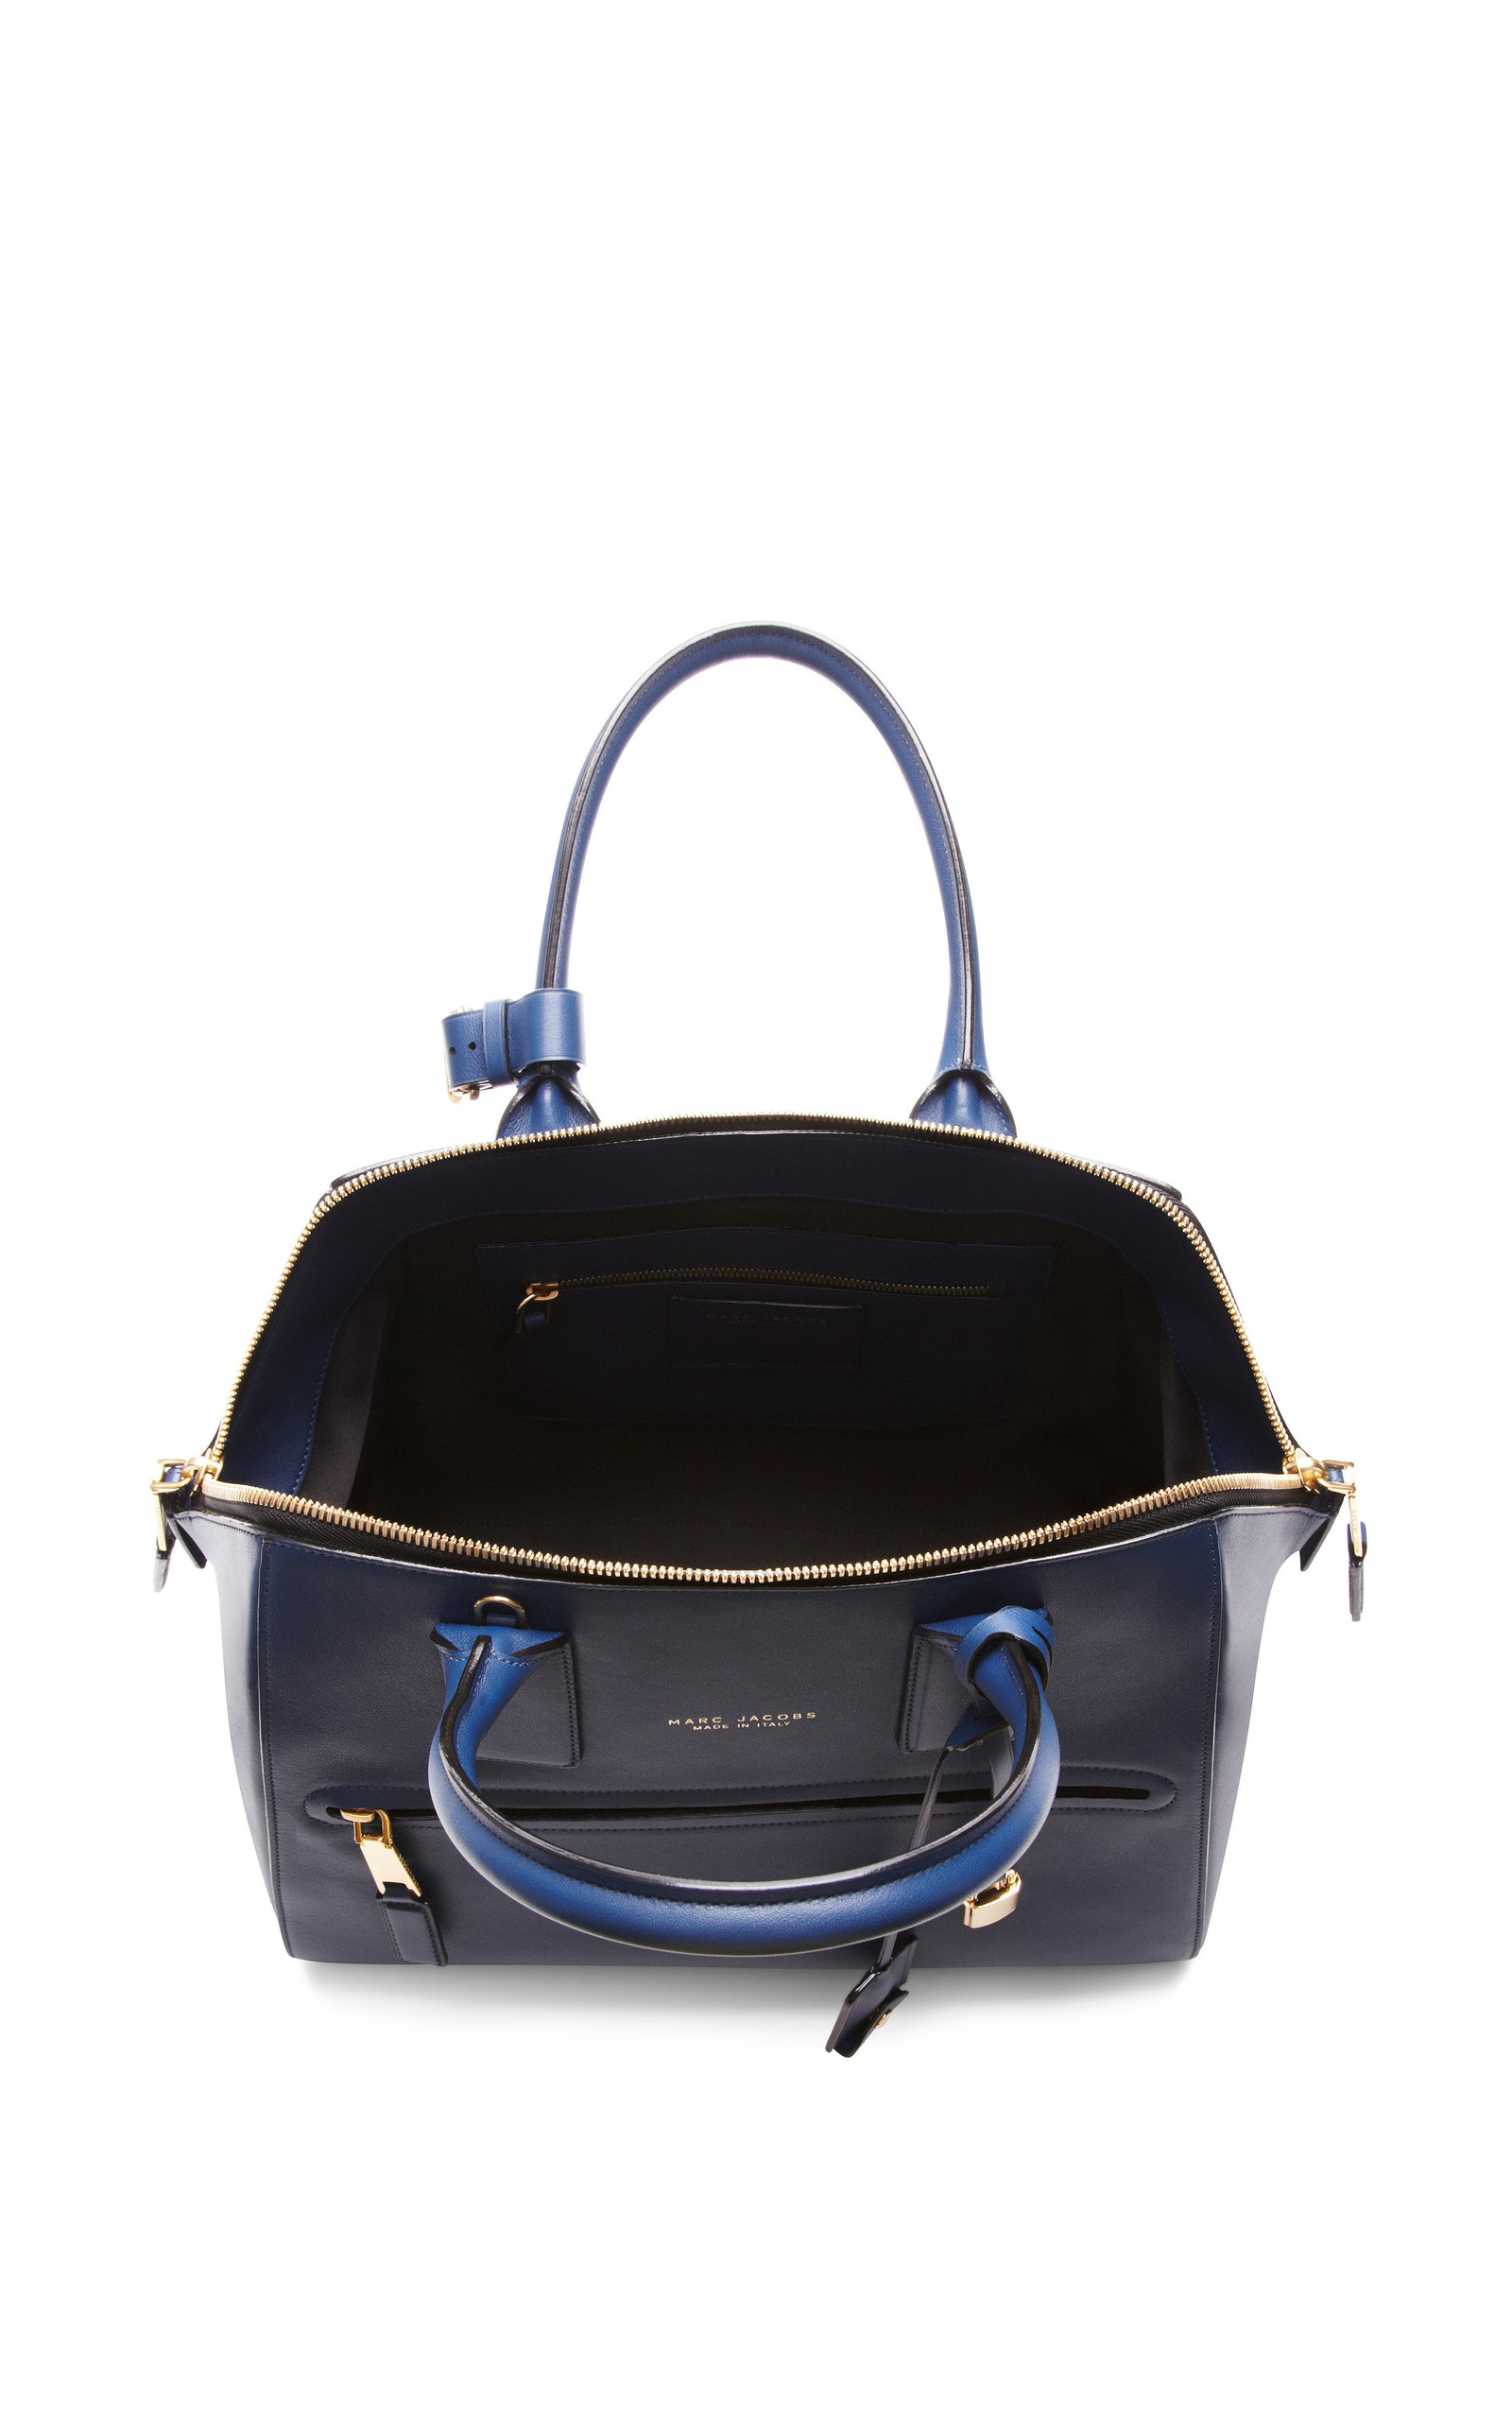 dea20584912 Marc JacobsMedium Smooth Incognito Bag In Blue. CLOSE. Loading. Loading.  Loading